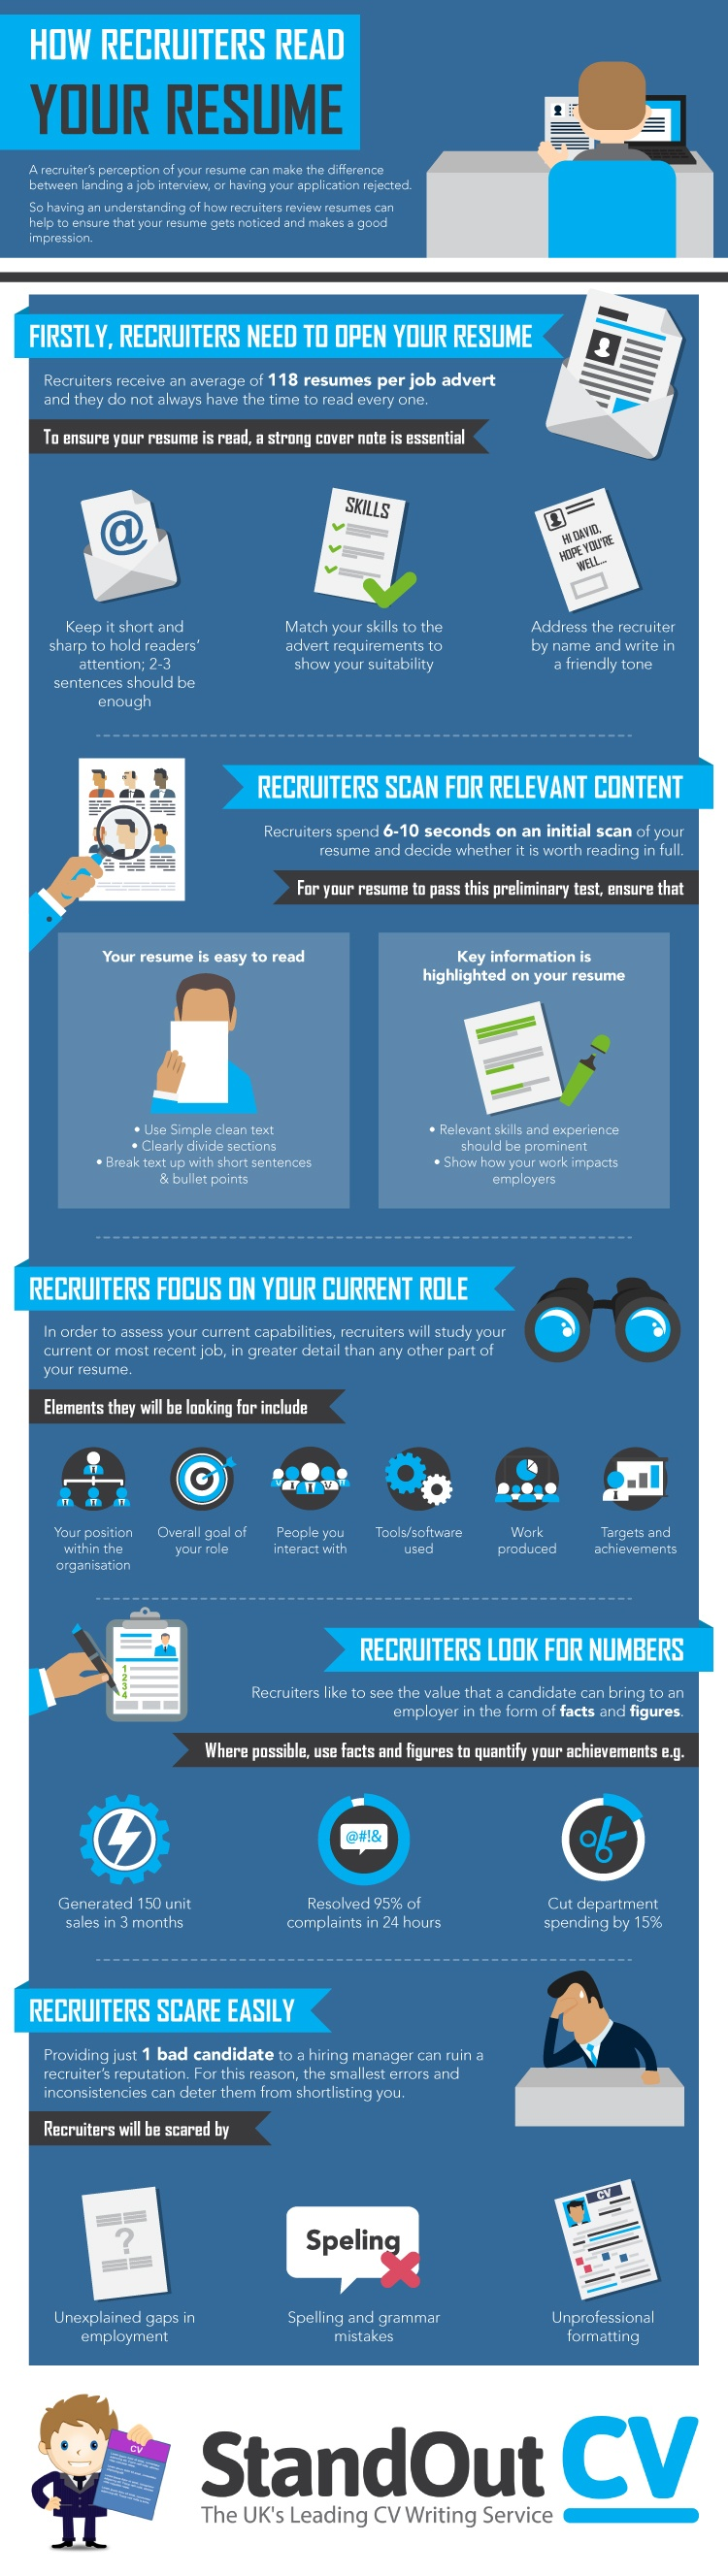 resume How Recruiters Read Resumes what do recruiters look for in a resume infographic how read your jpg